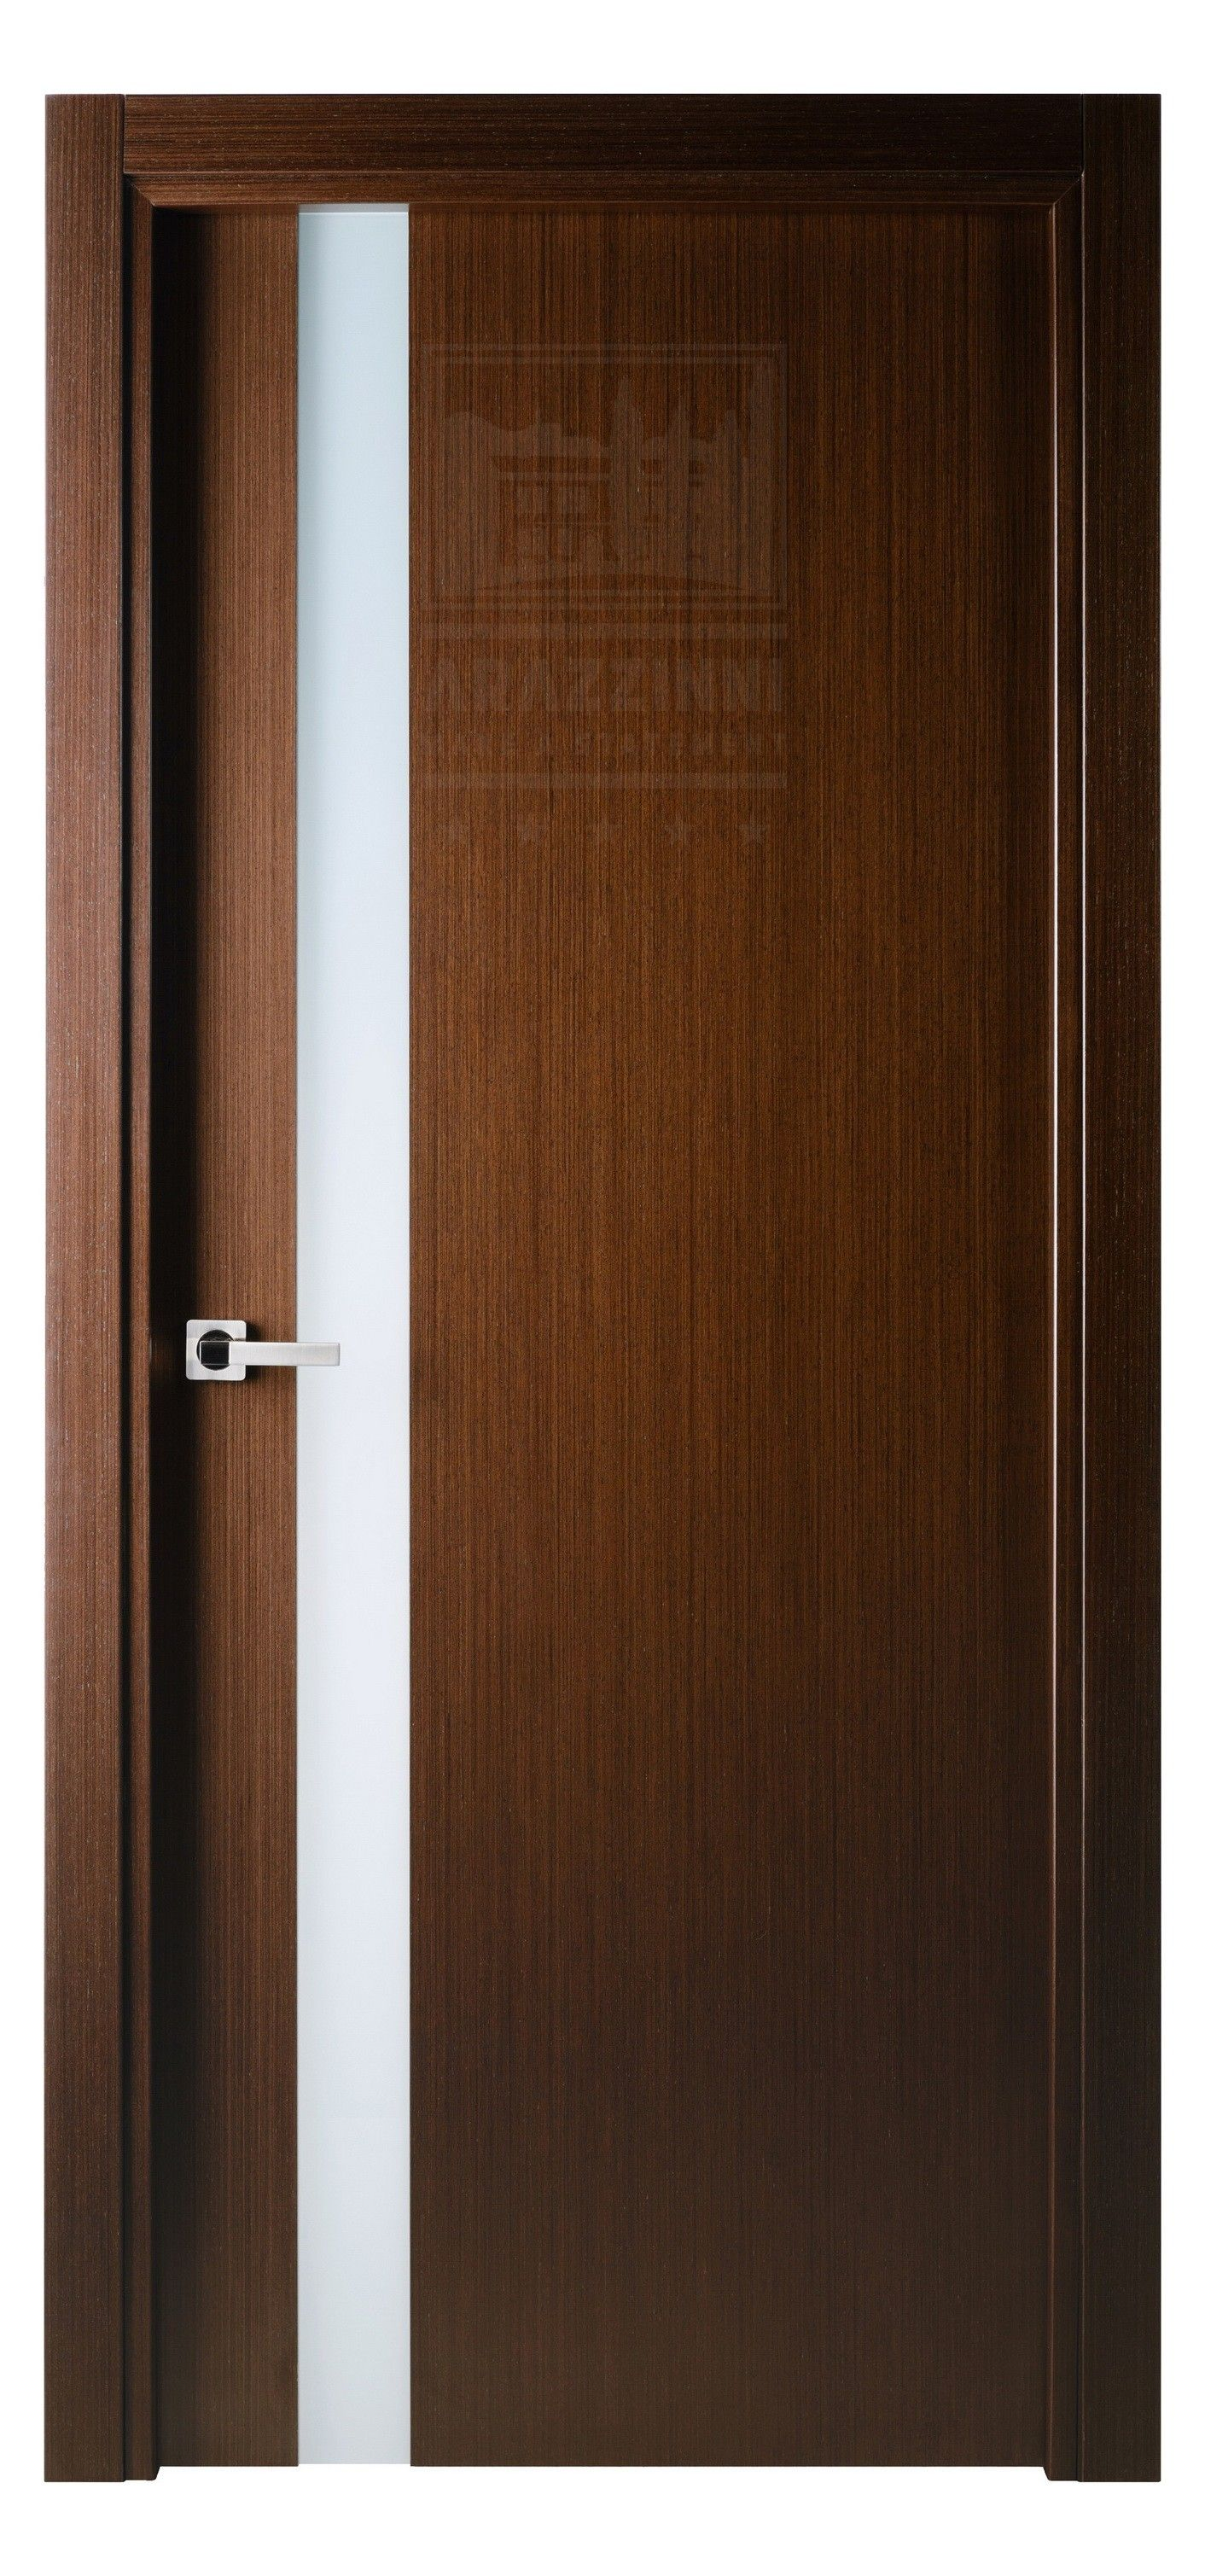 Doors Design: Versai Interior Door In Italian Wenge Finish